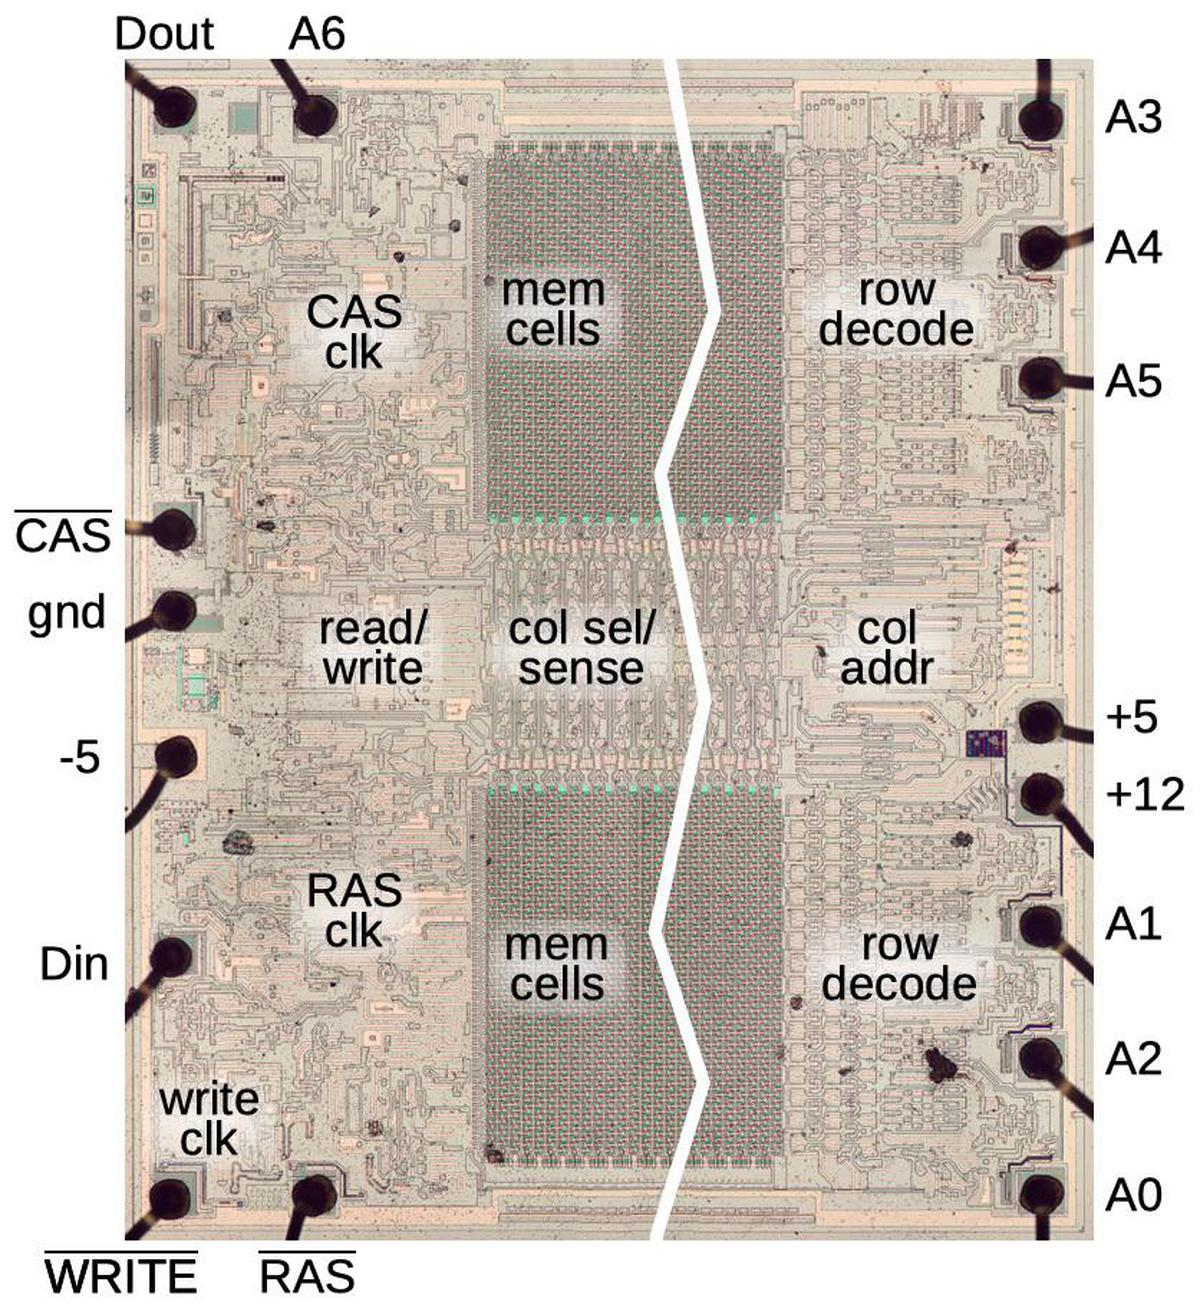 The 4116 die with key blocks labeled. Most of the memory cell area has been cut out.